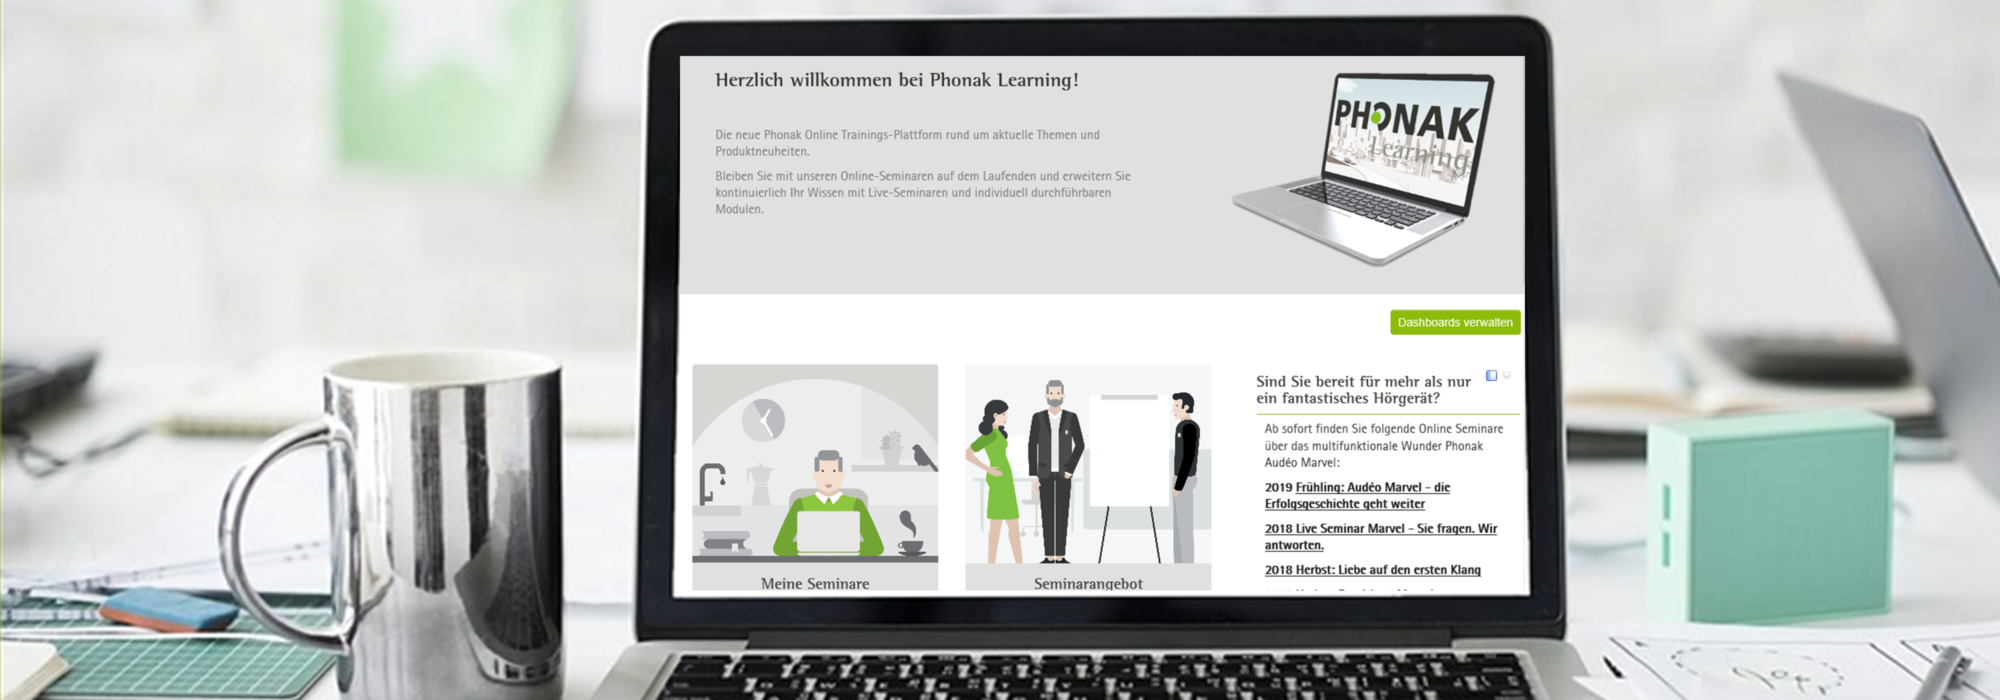 Phonak Learning Trainings und Tutorials